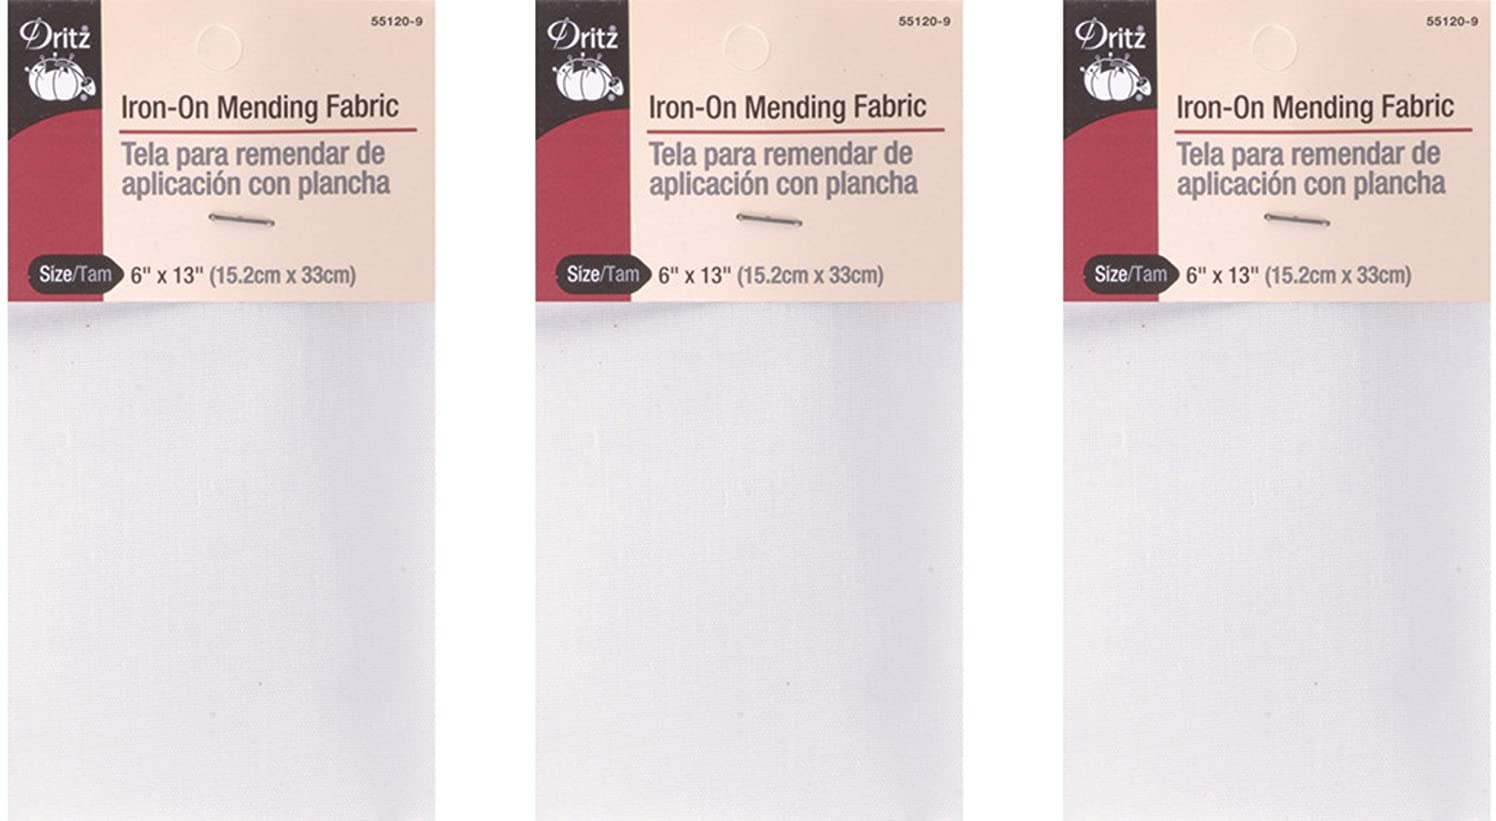 Dritz 55120-9 Iron-On Mending Fabric, White, 6 by 13-Inch (3 Pack)